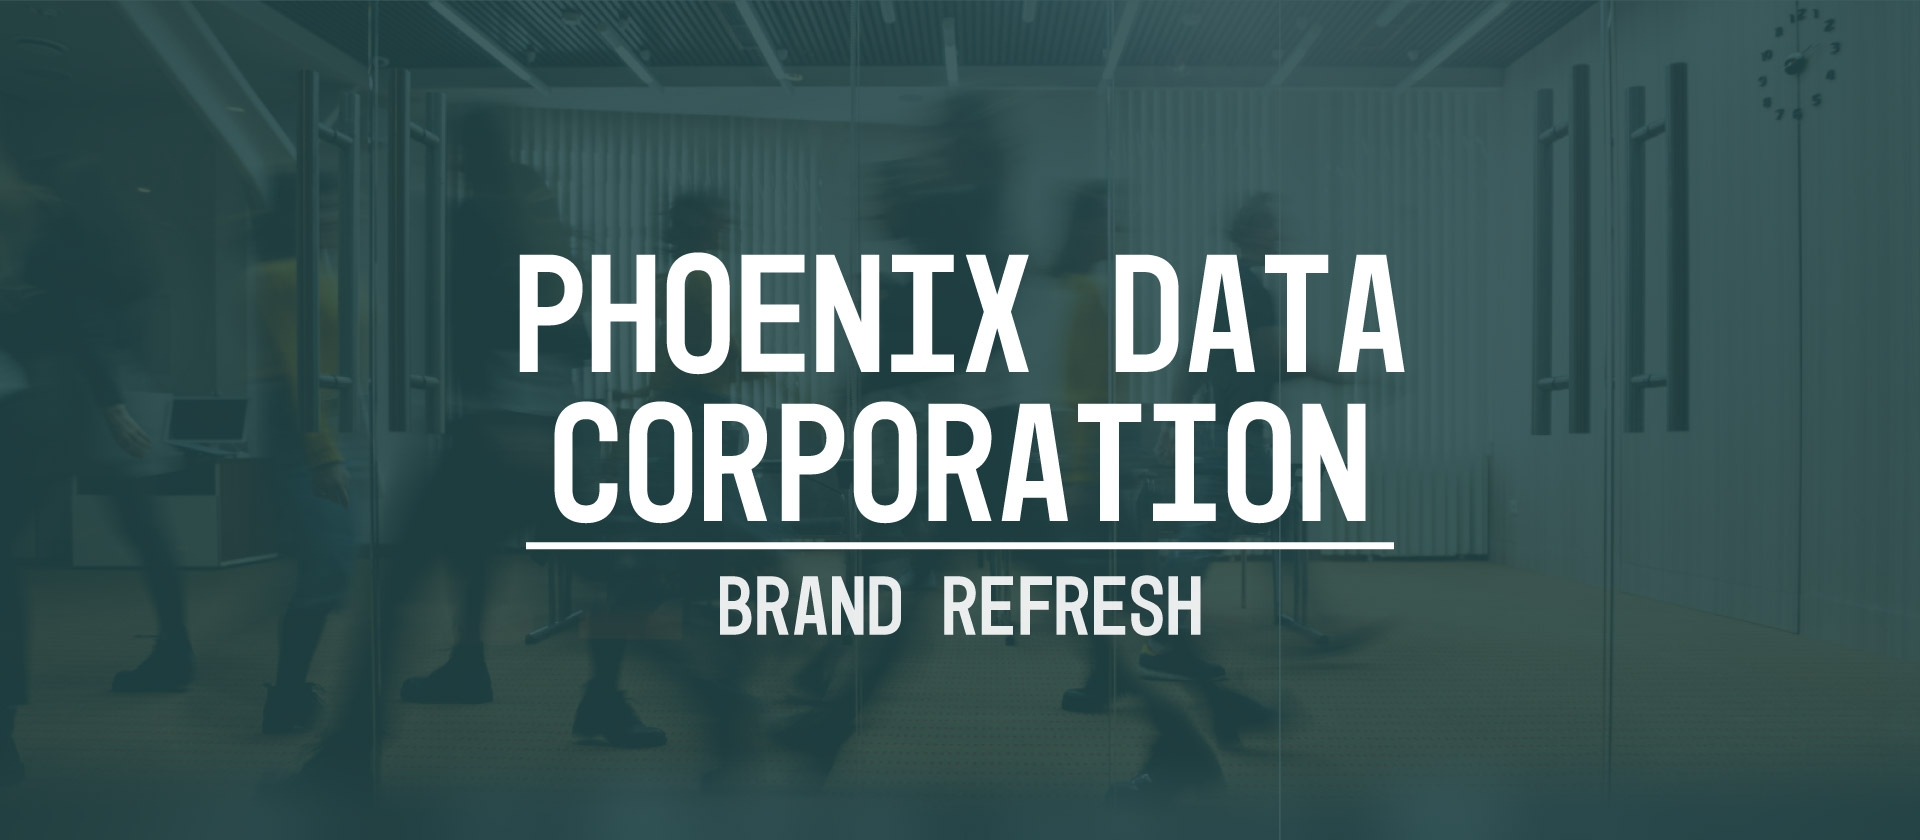 Brand Guideline and Brand Refresh: Phoenix Data Corporation